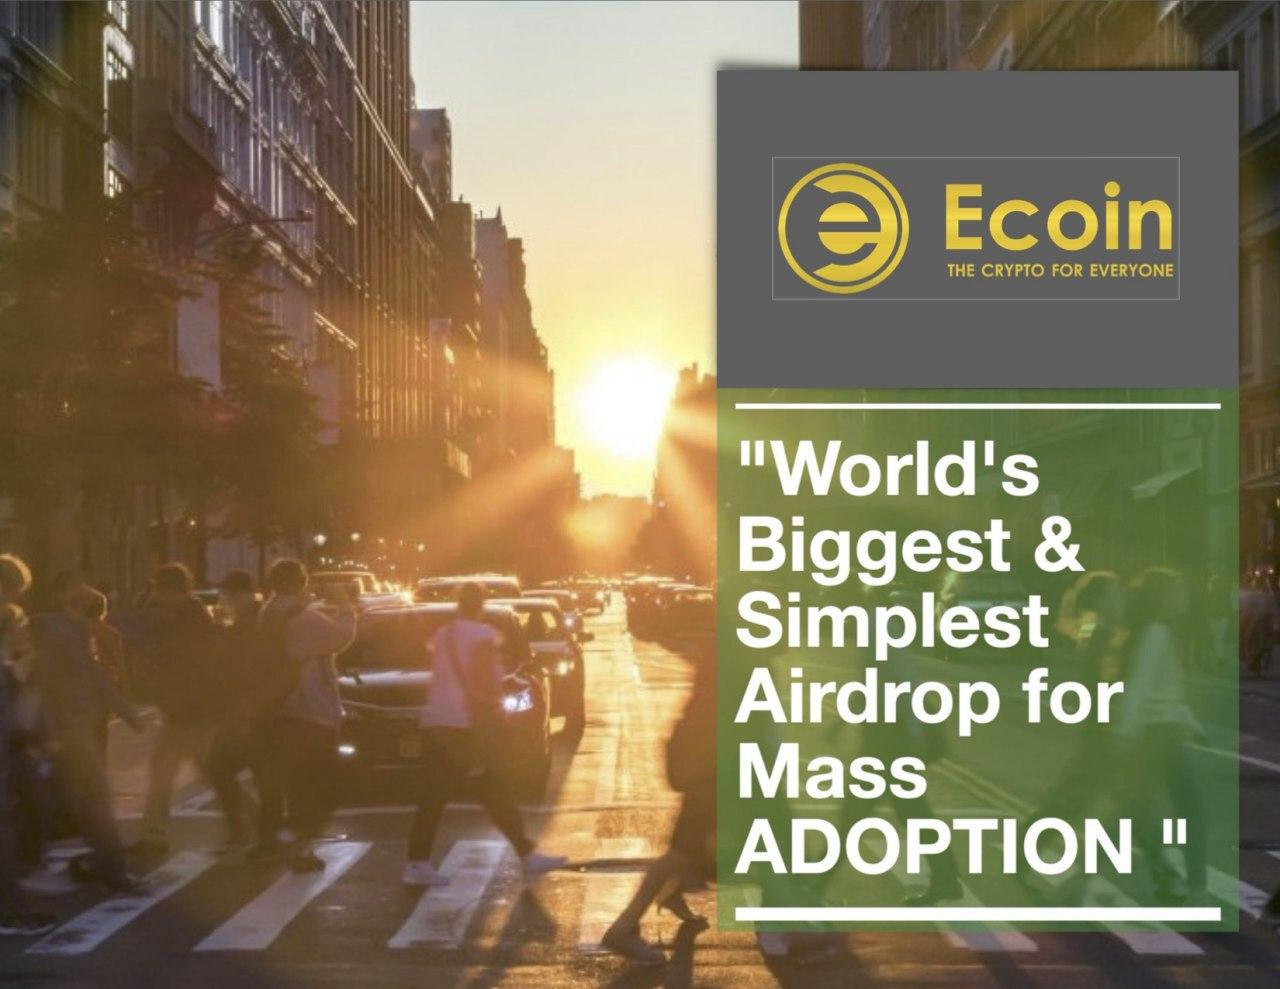 ecoinofficial.org